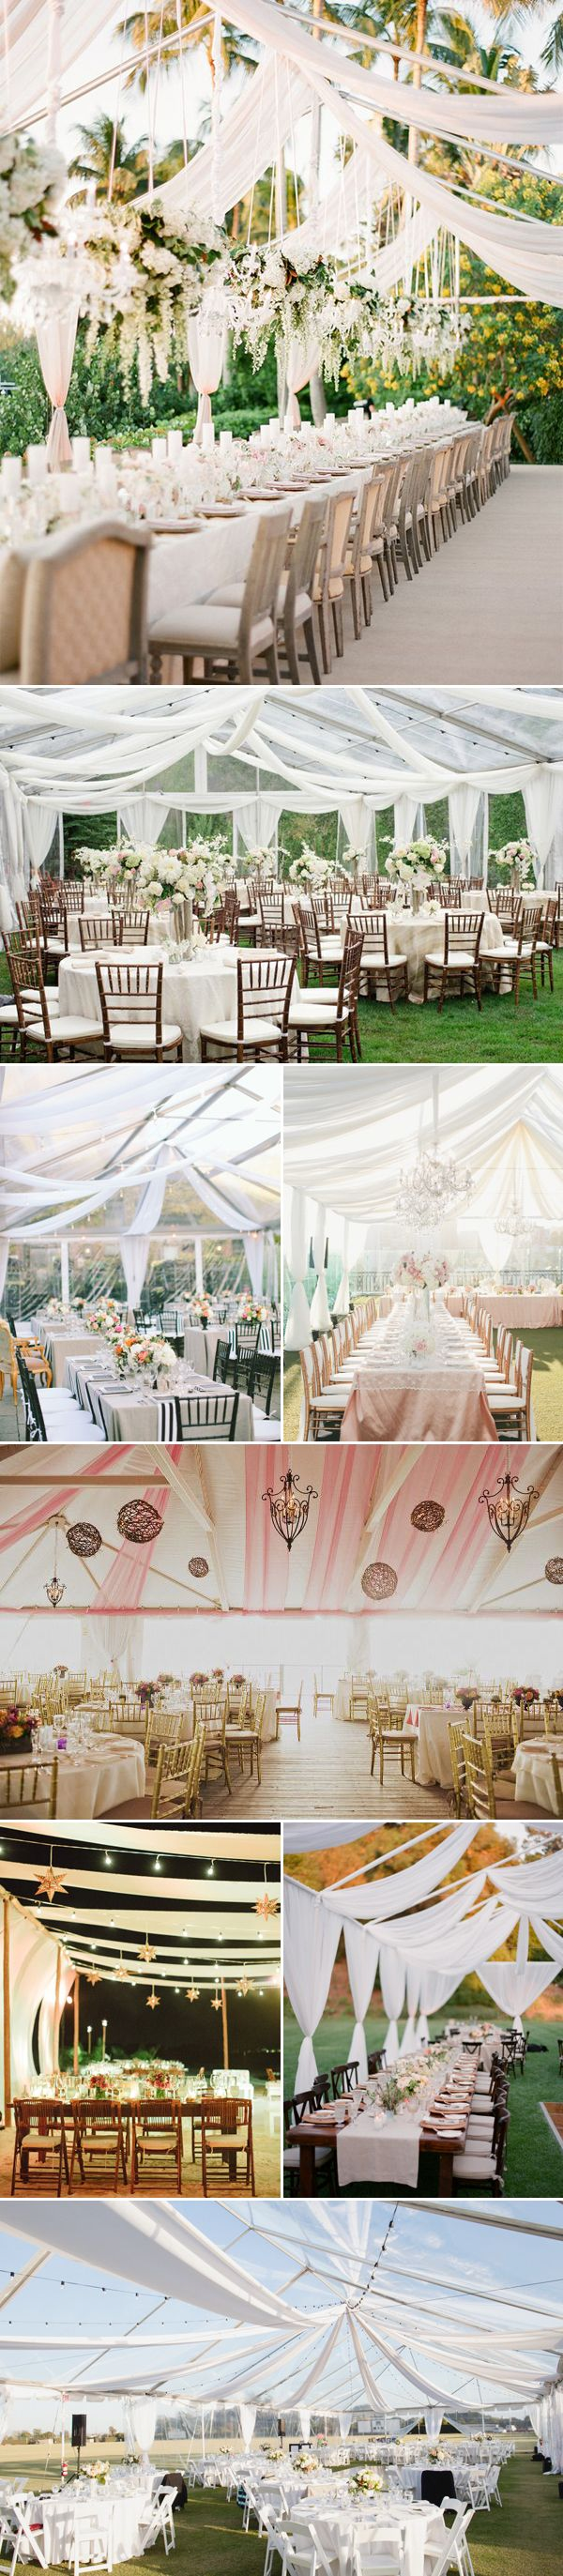 diy outdoor wedding lighting ideas%0A    Beautiful Ways to Decorate Your Wedding Tent  Draped Fabric DIY wedding  planner with diy wedding ideas and How To info including DIY wedding decor